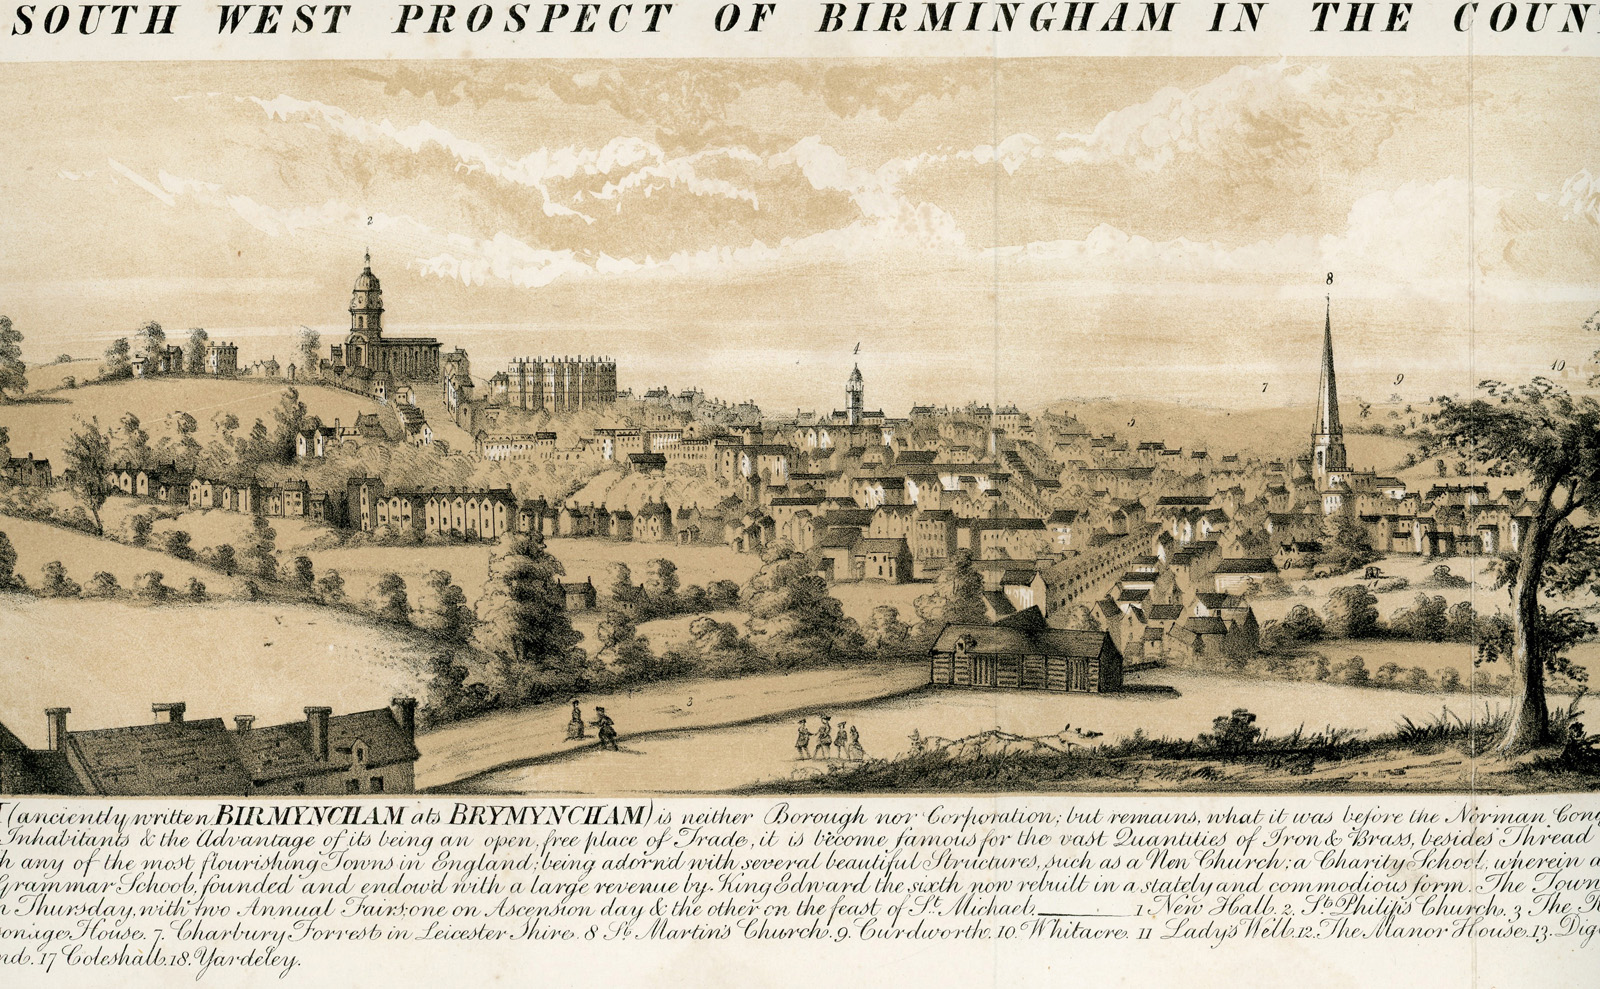 The South West Prospect of Birmingham